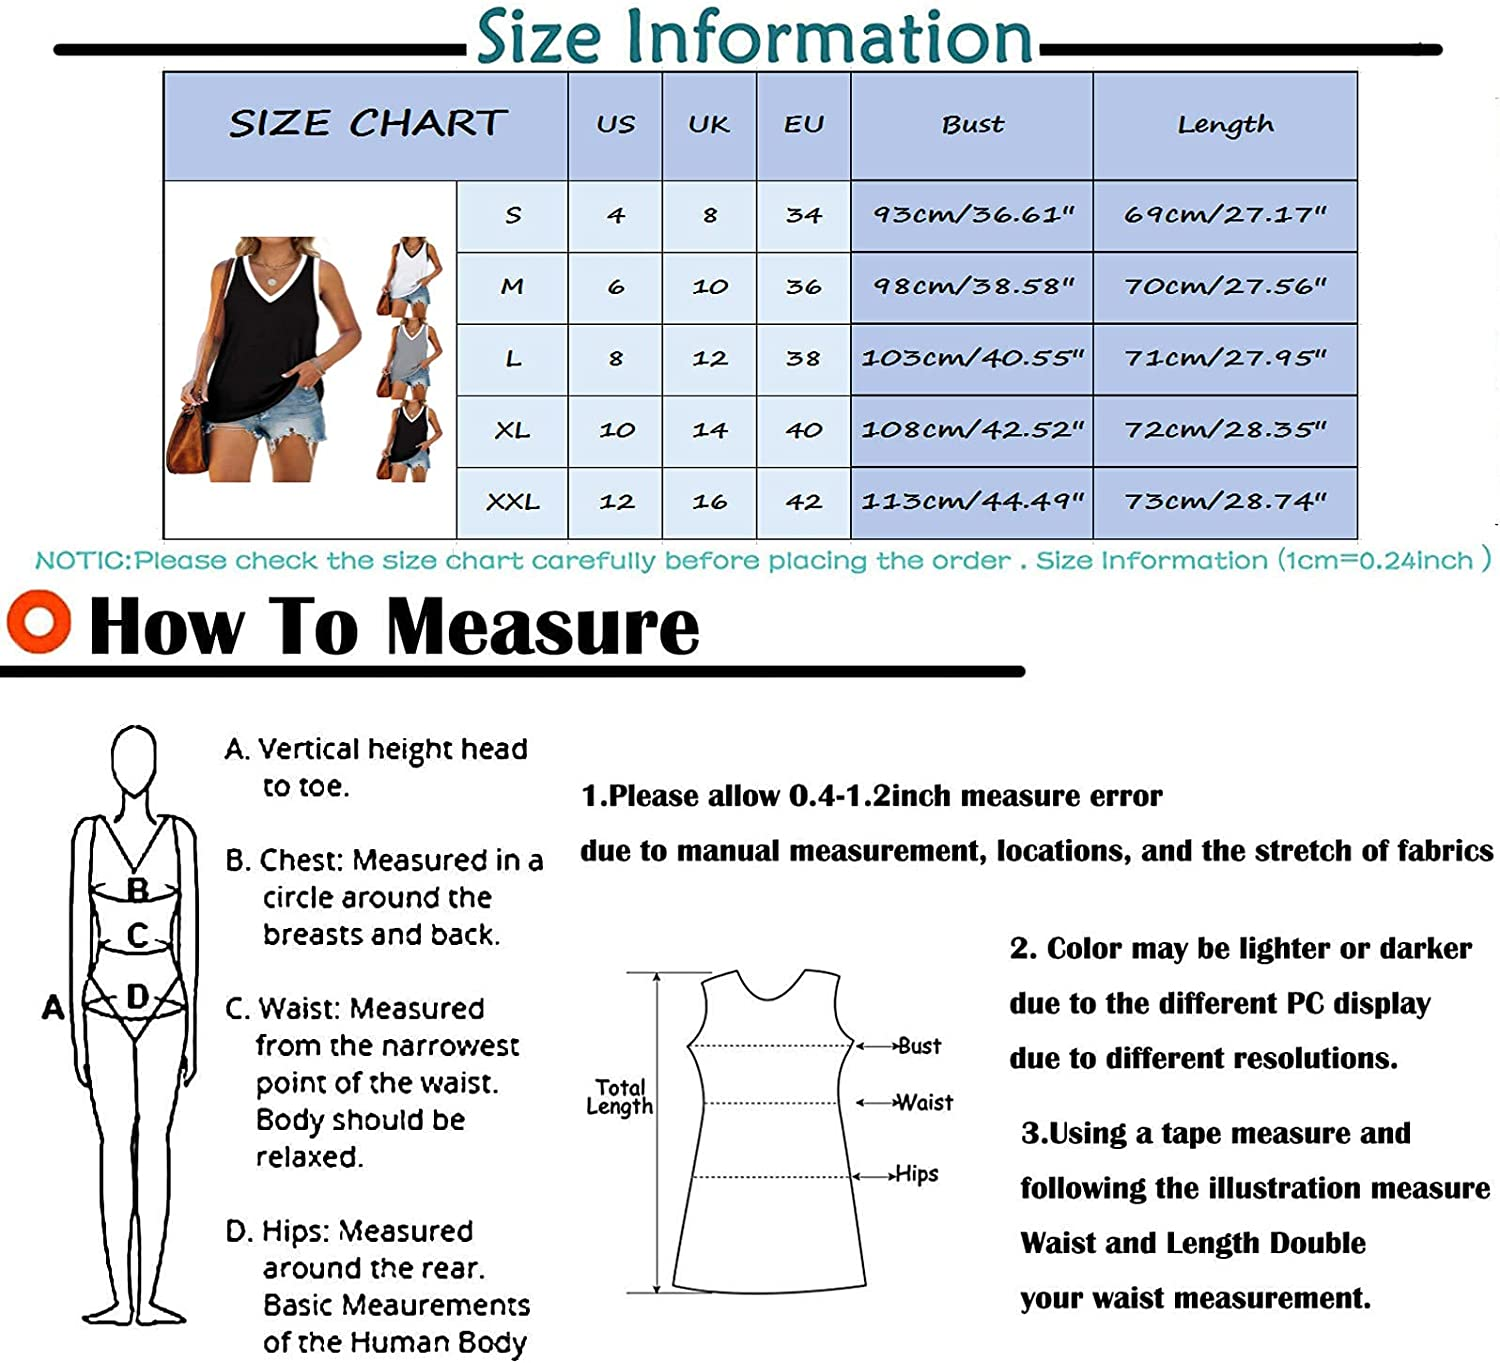 Tank Tops for Women Loose Fit, Womens Tank Tops V Neck T Shirts Sleeveless Tops Floral Side Split Tanks